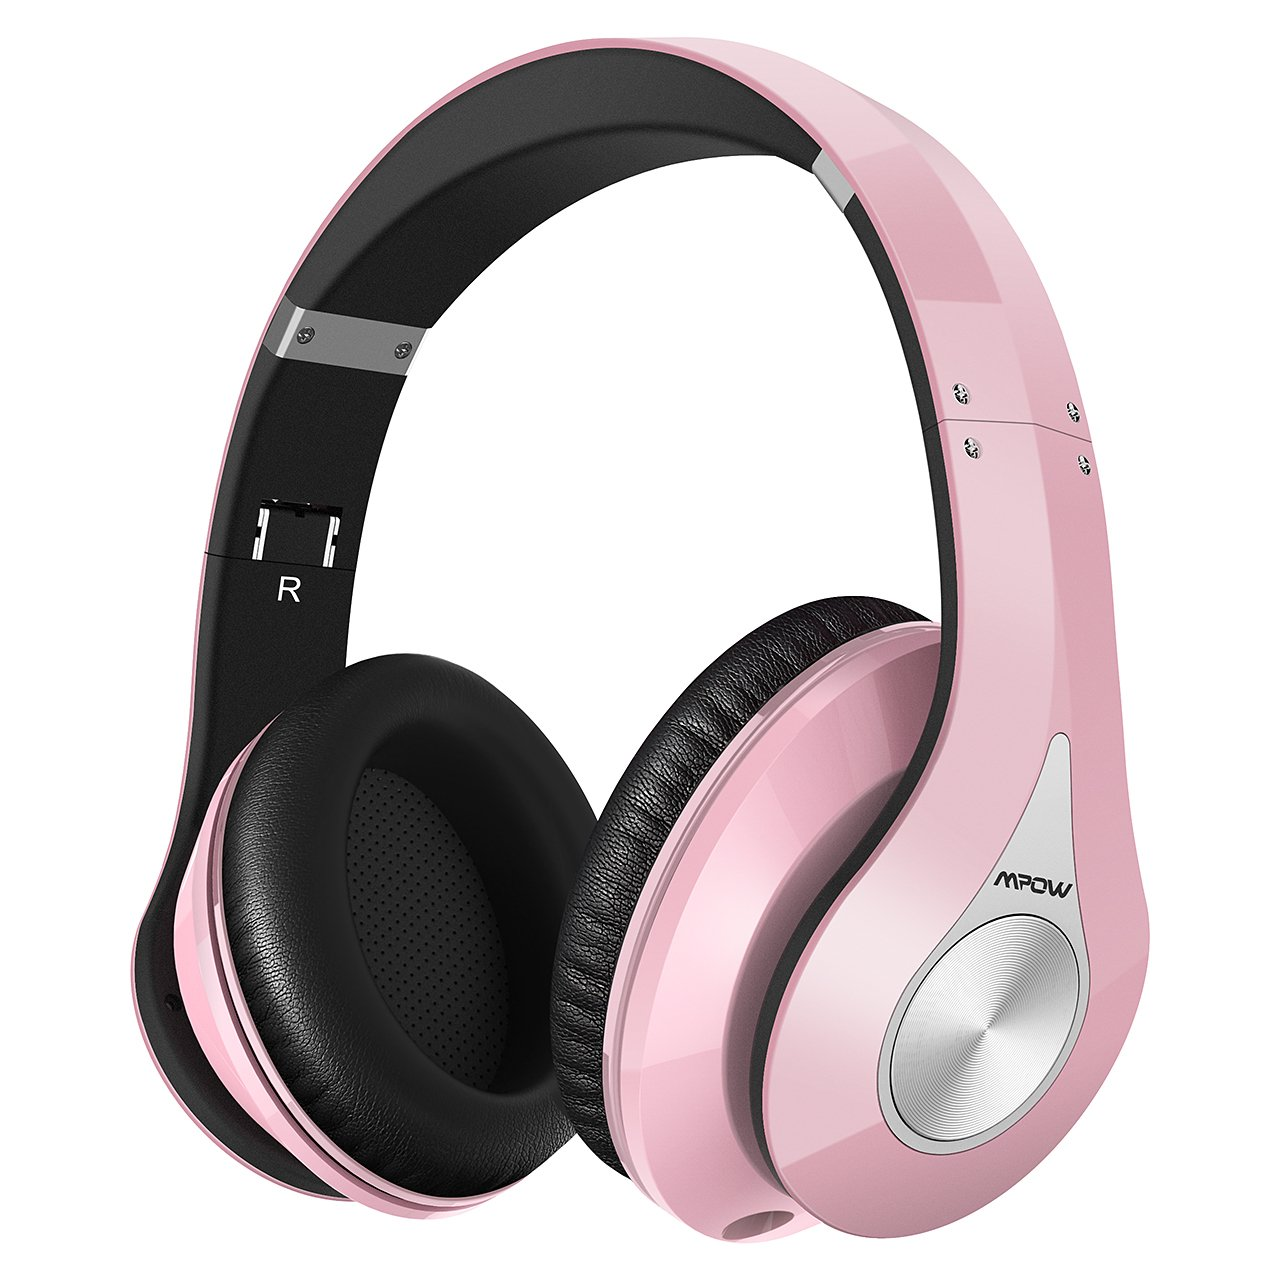 Mpow 059 Bluetooth Headphones Over Ear  Hi-Fi Stereo Wireless Headset  Foldable  Soft Memory-Protein Earmuffs  w Built-in Mic Wired Mode PC Cell Phones TV